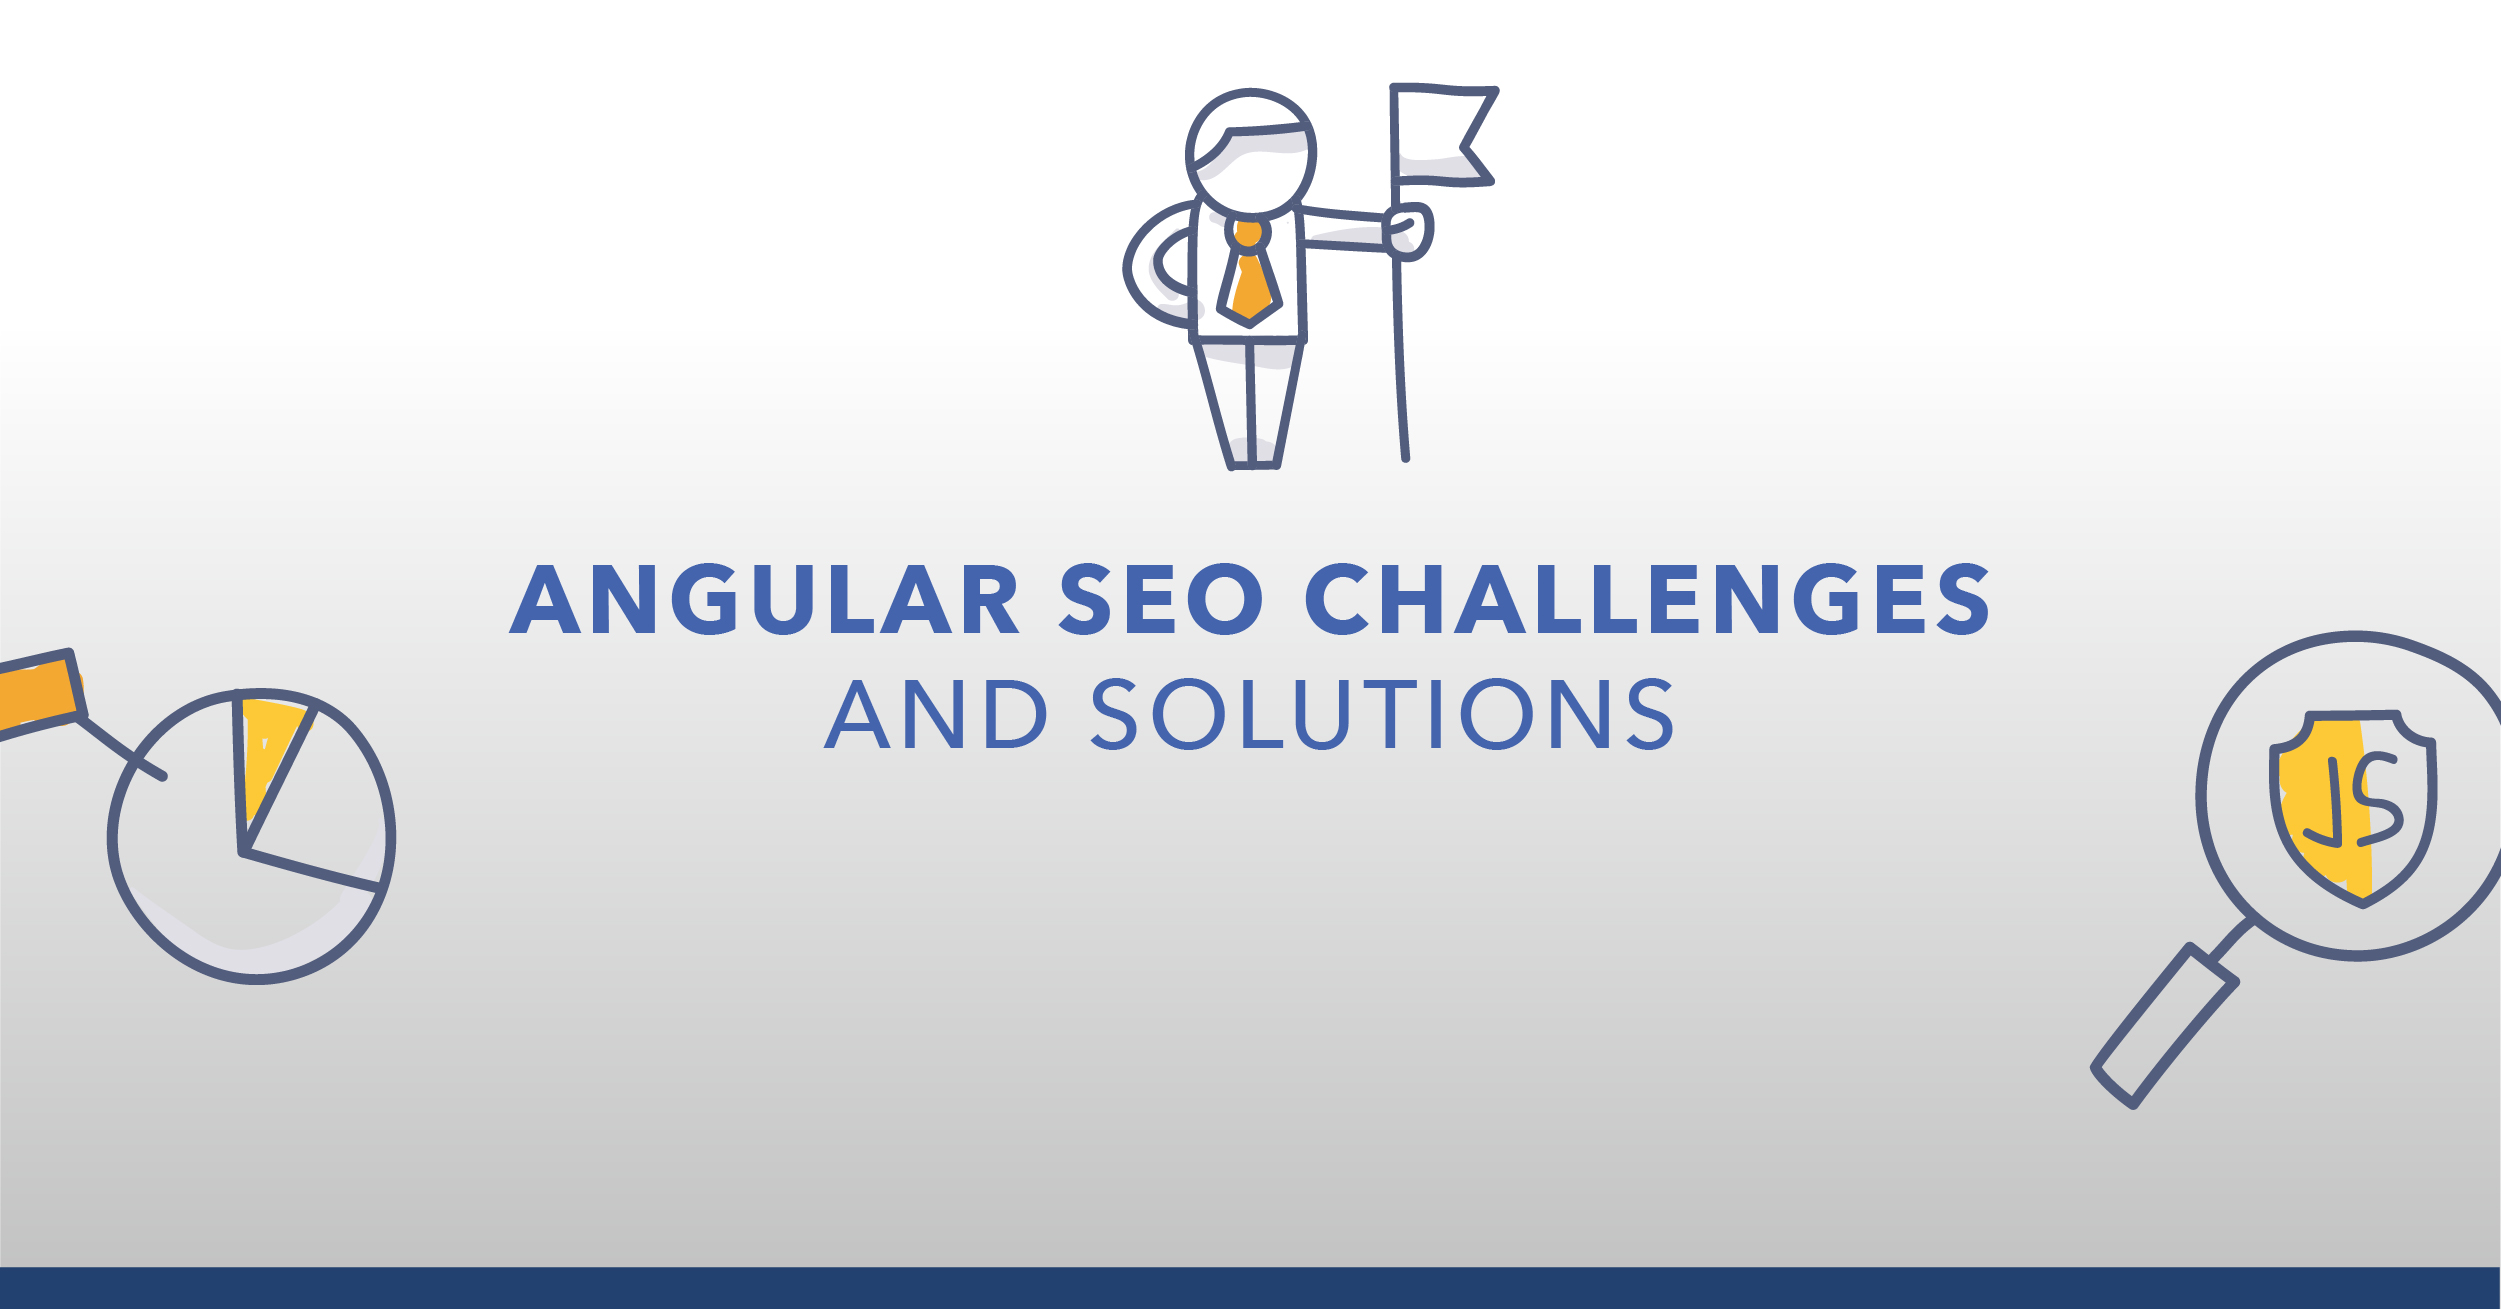 AngularJS & SEO: How to Optimize AngularJS for Crawling and Indexing